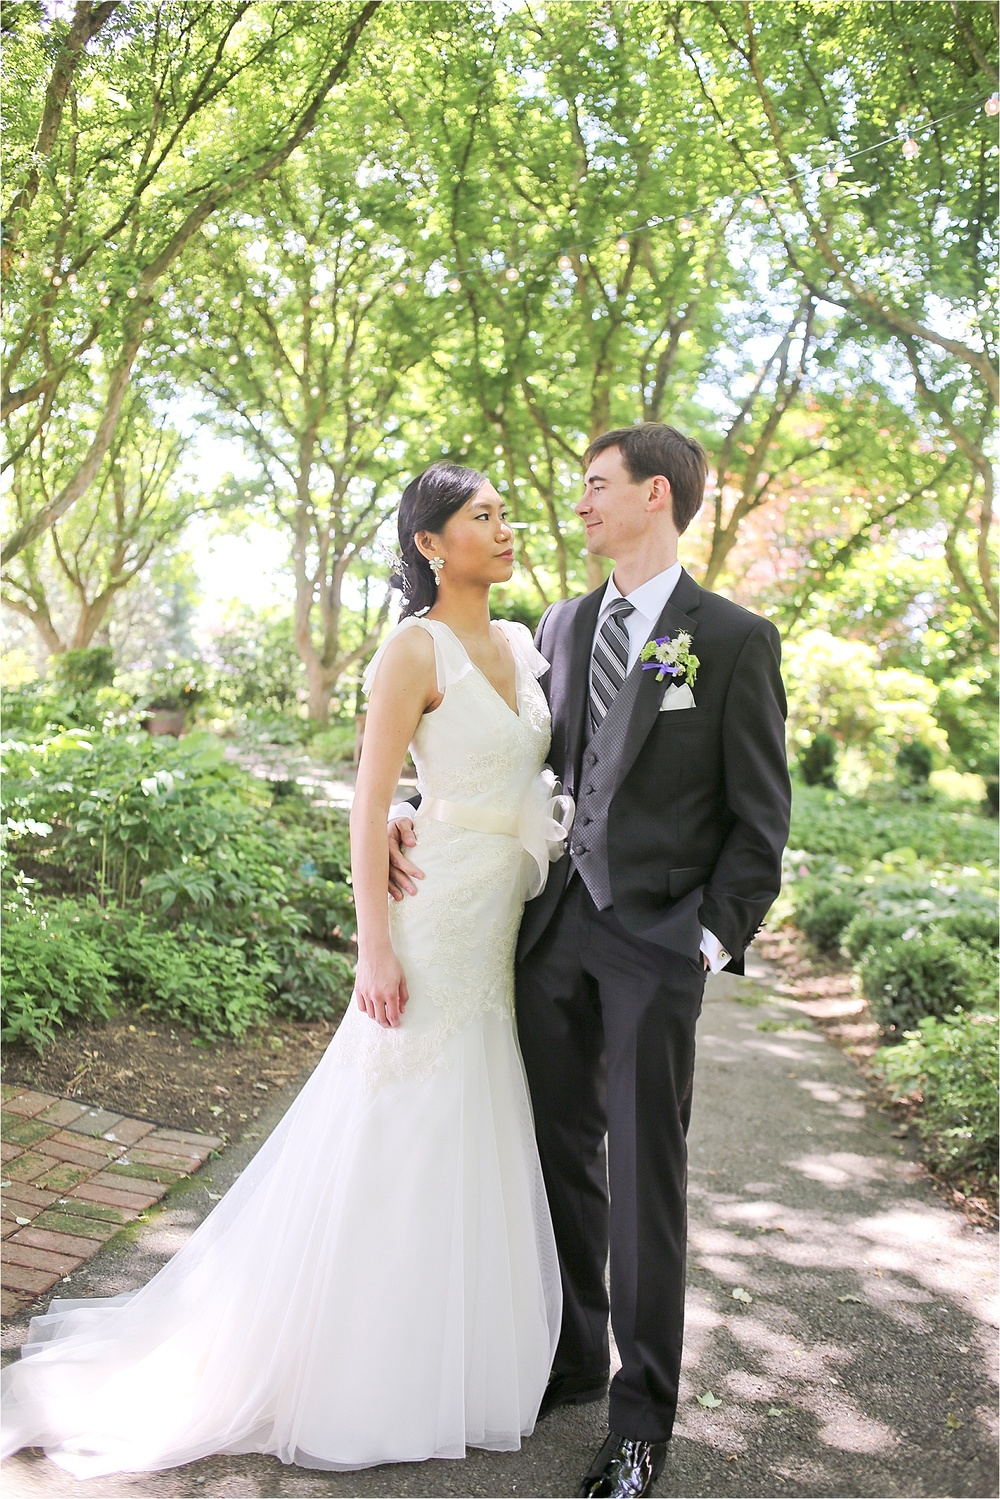 Hahn-Horticulture-Garden-Wedding-Photos-Virginia-Tech-Wedding-Photographer-_0014.jpg